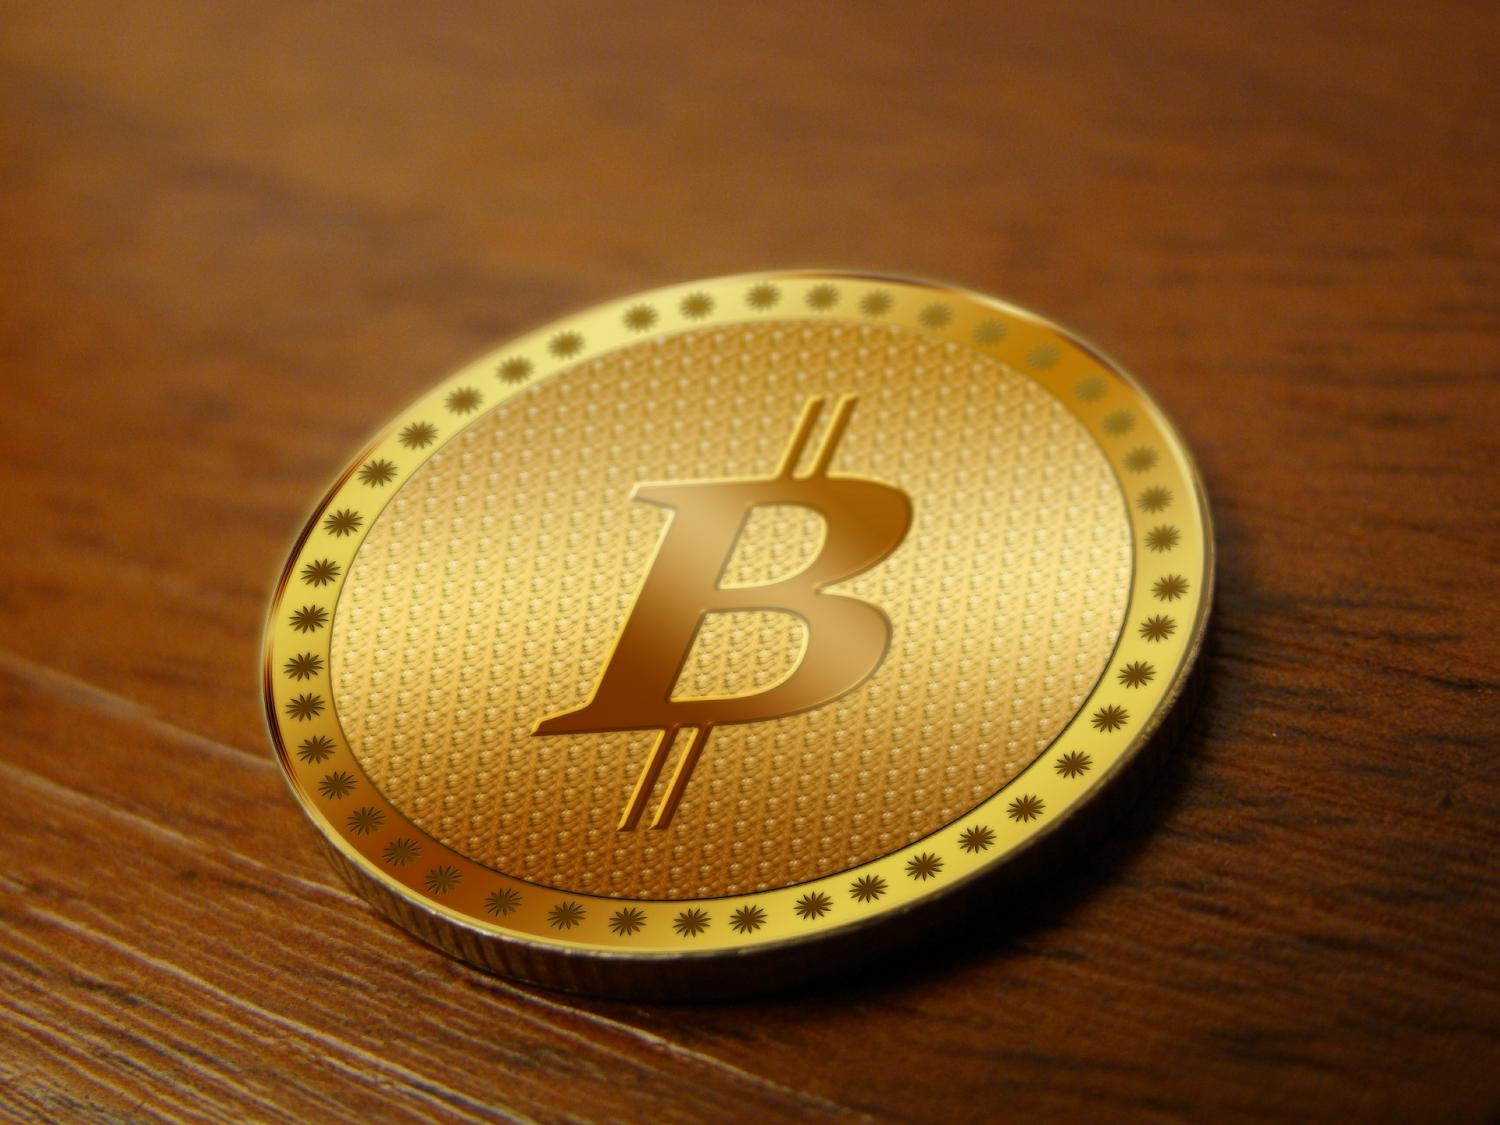 Researchers find Bitcoin's Lightning network susceptible to cyberattacks